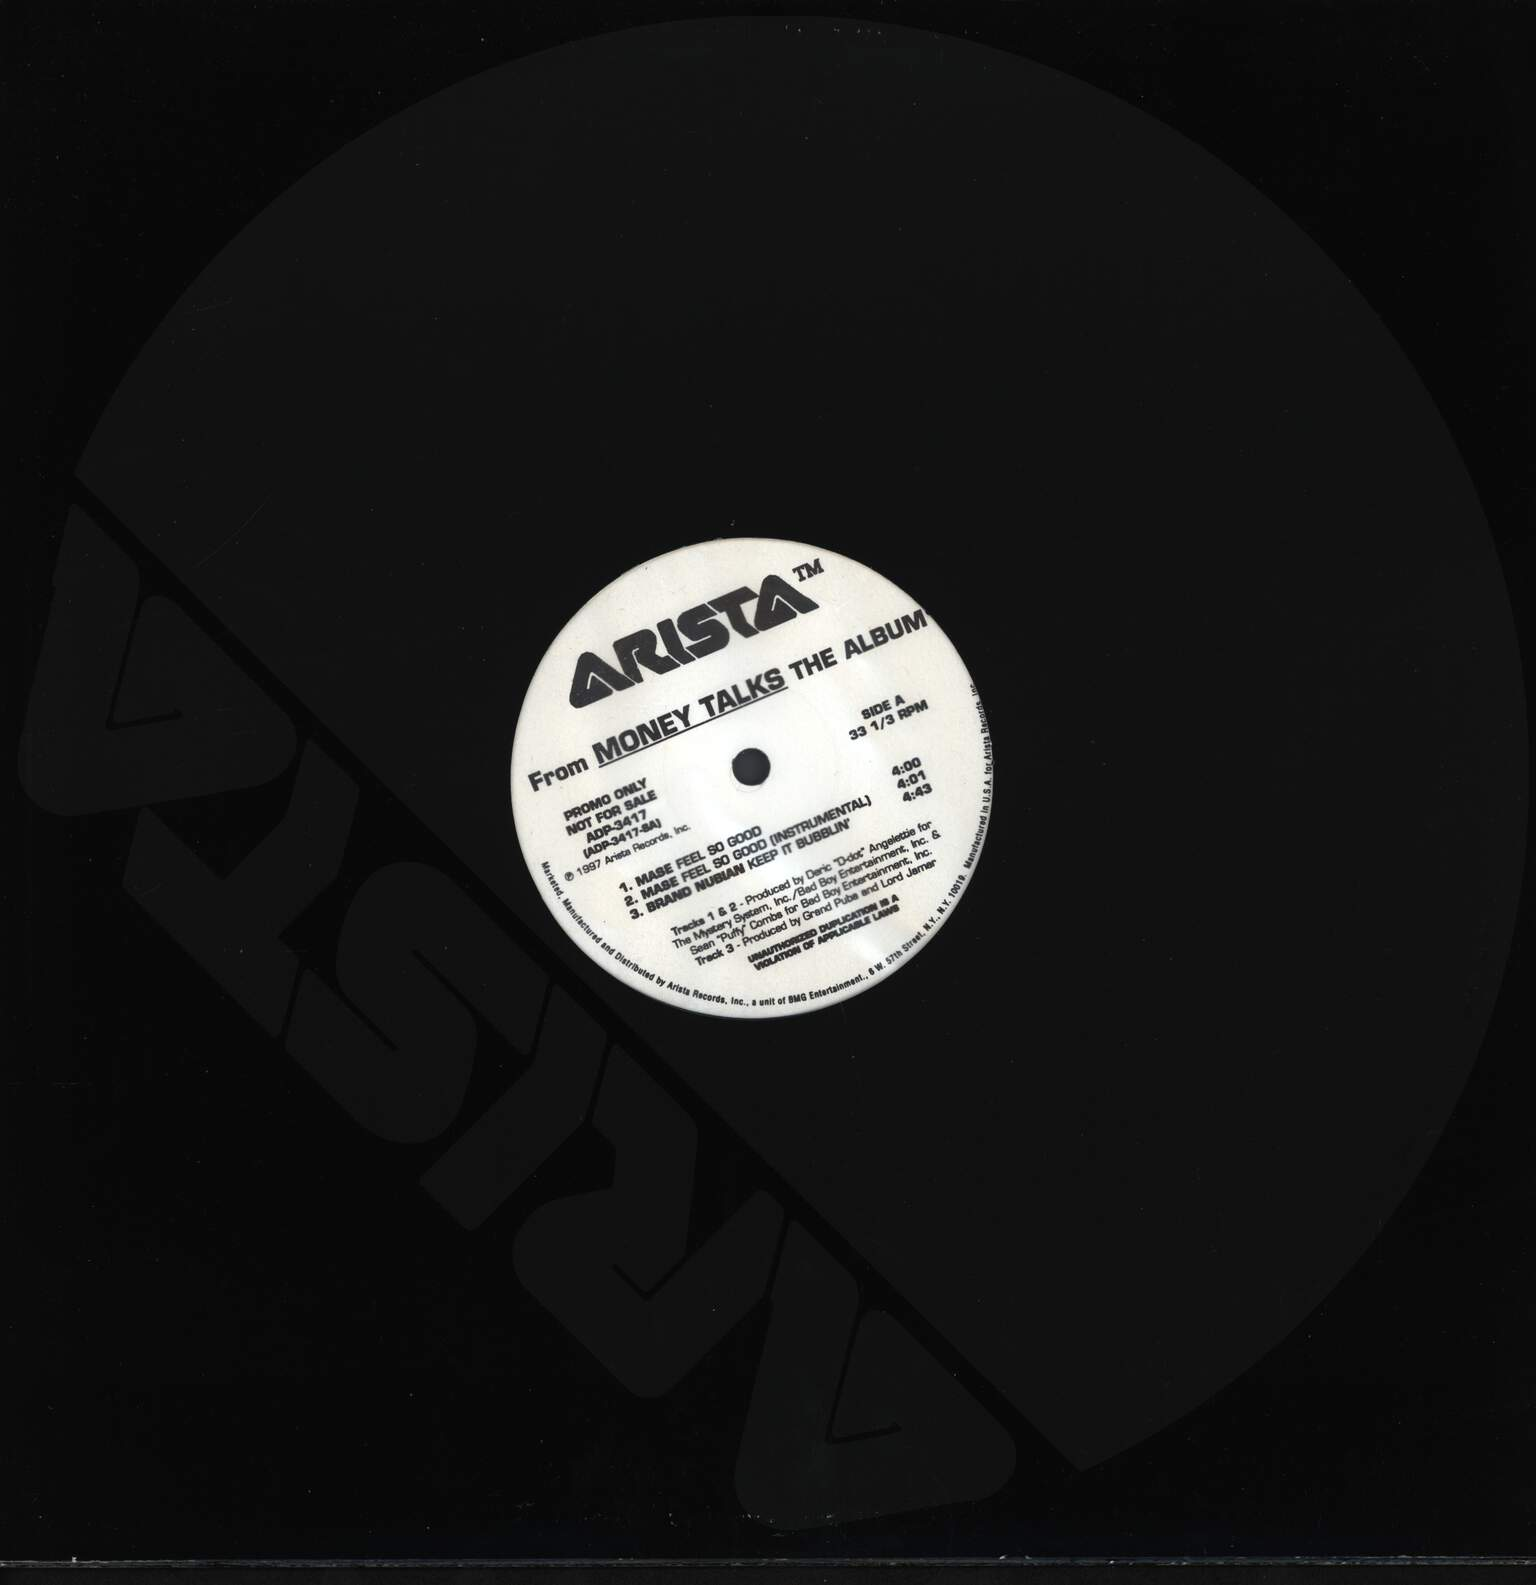 "Various: From Money Talks The Album, 12"" Maxi Single (Vinyl)"